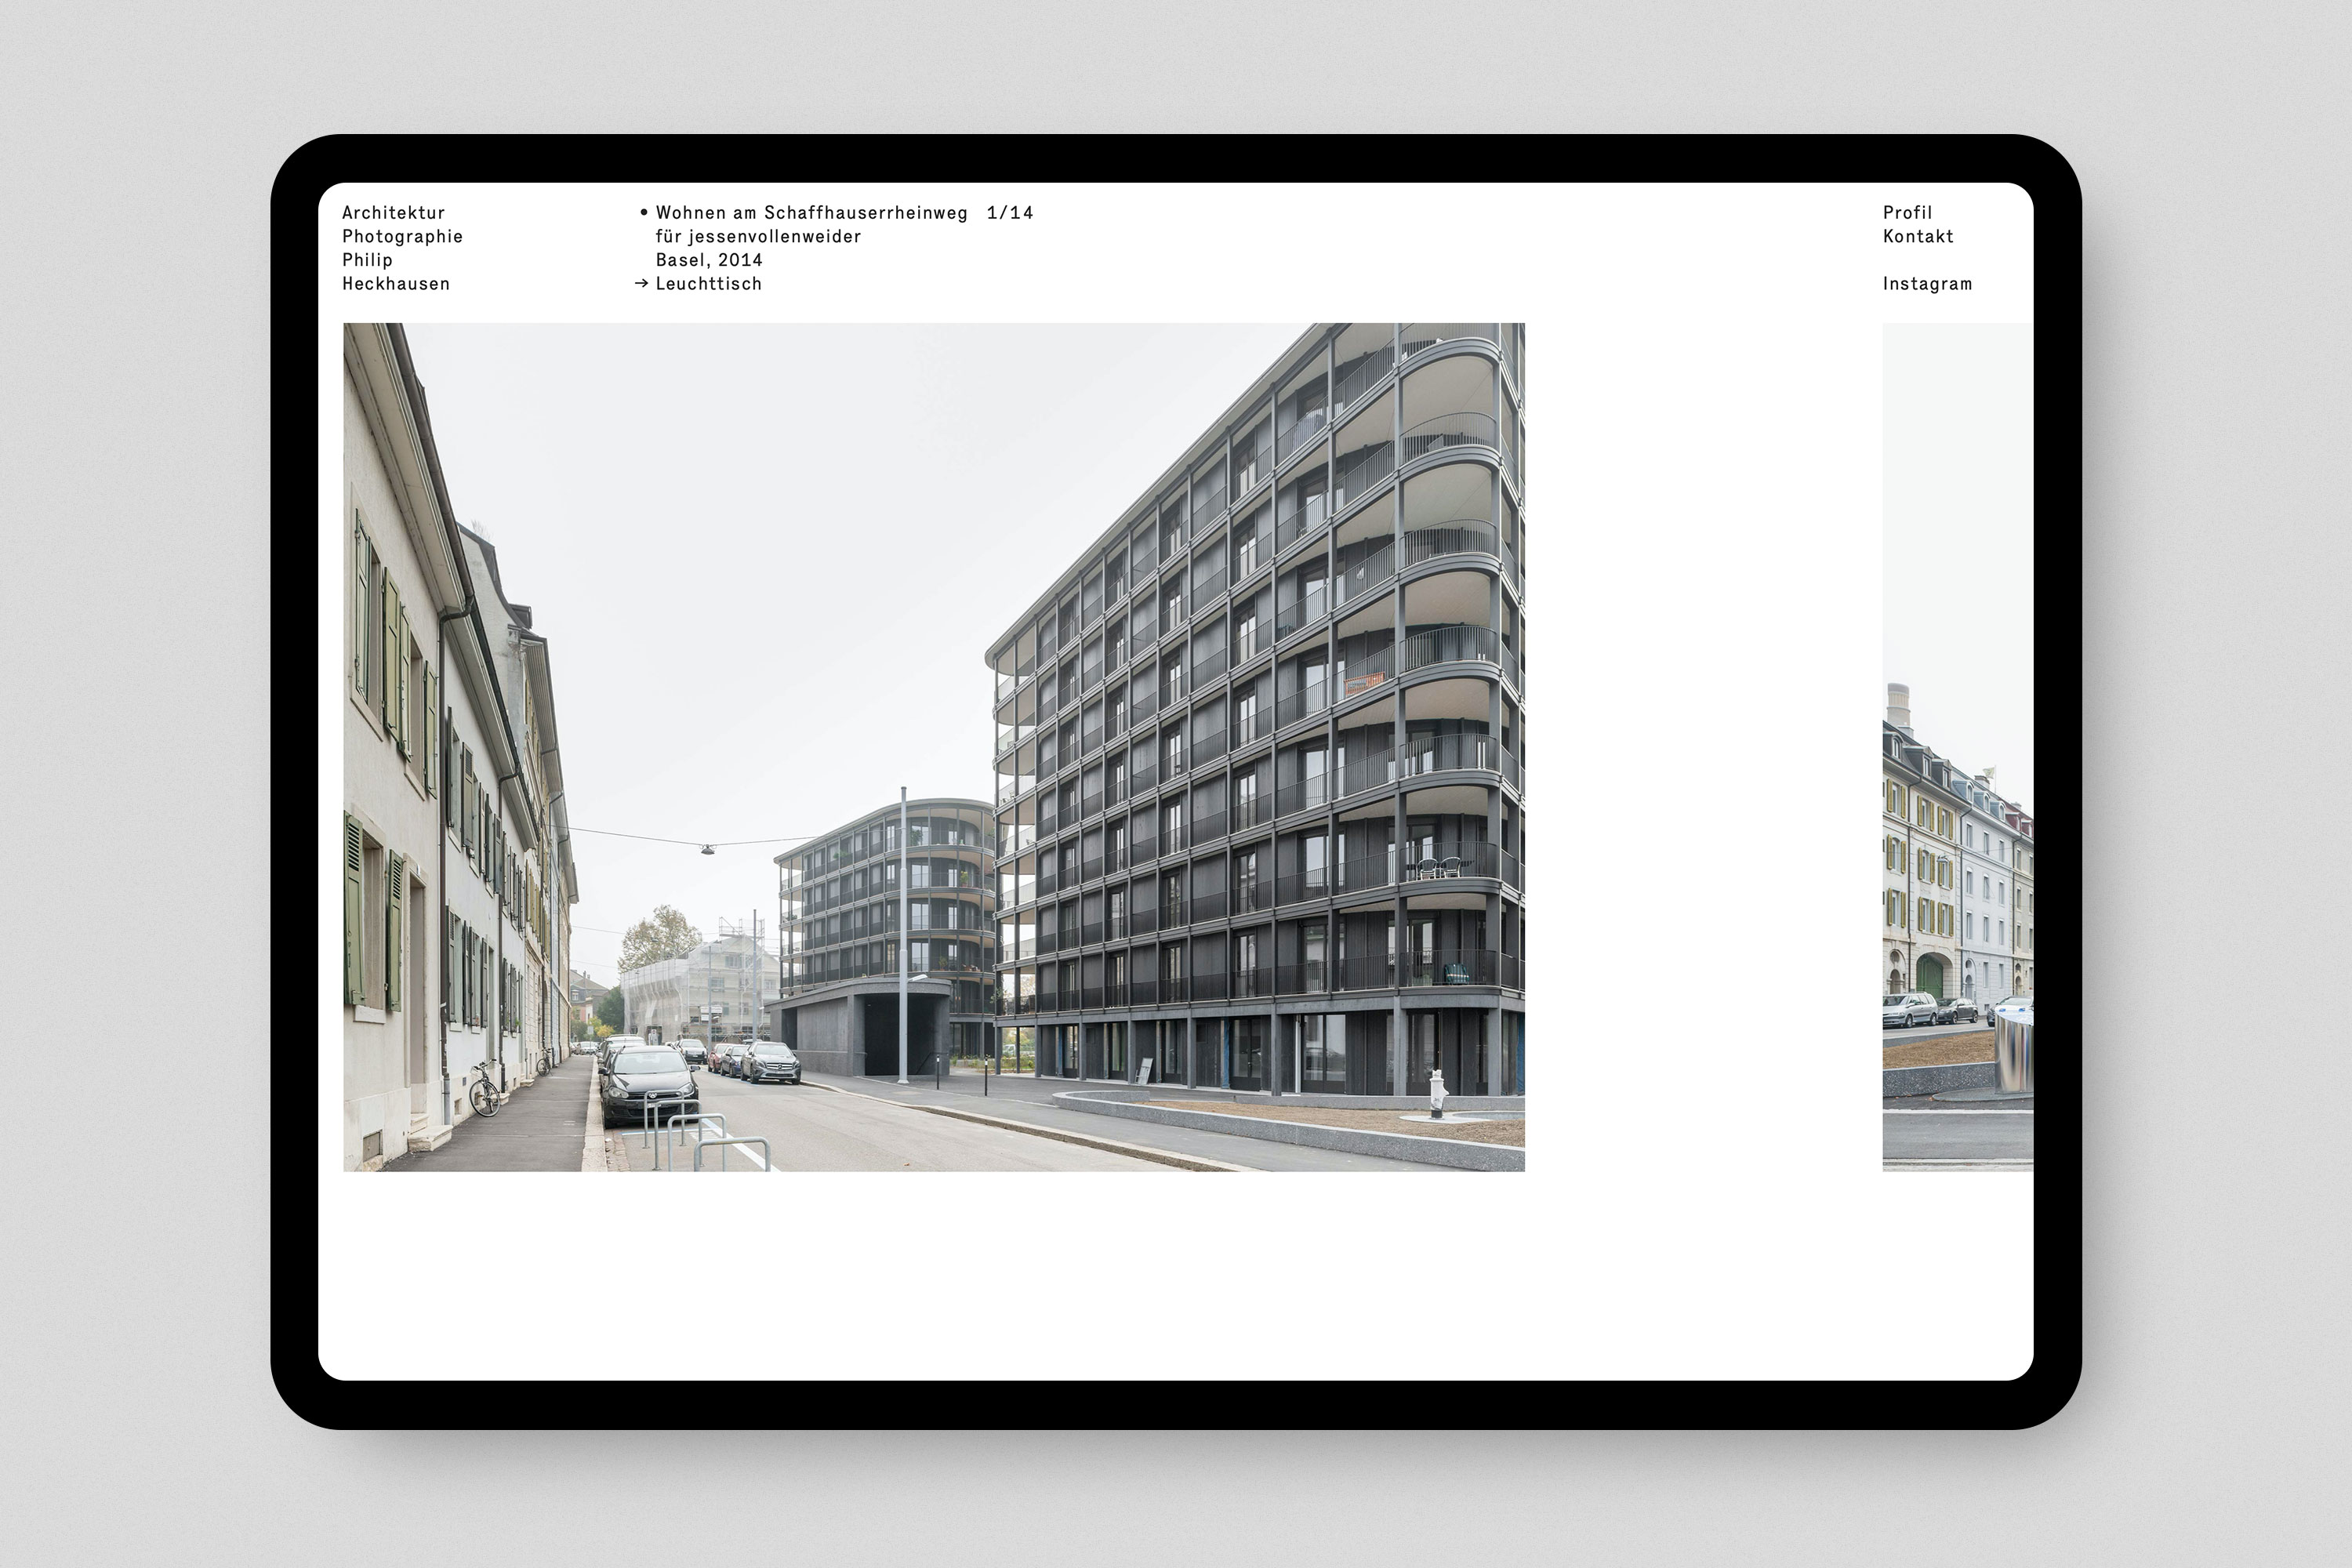 Architektur Photographie Philip Heckhausen Website 1